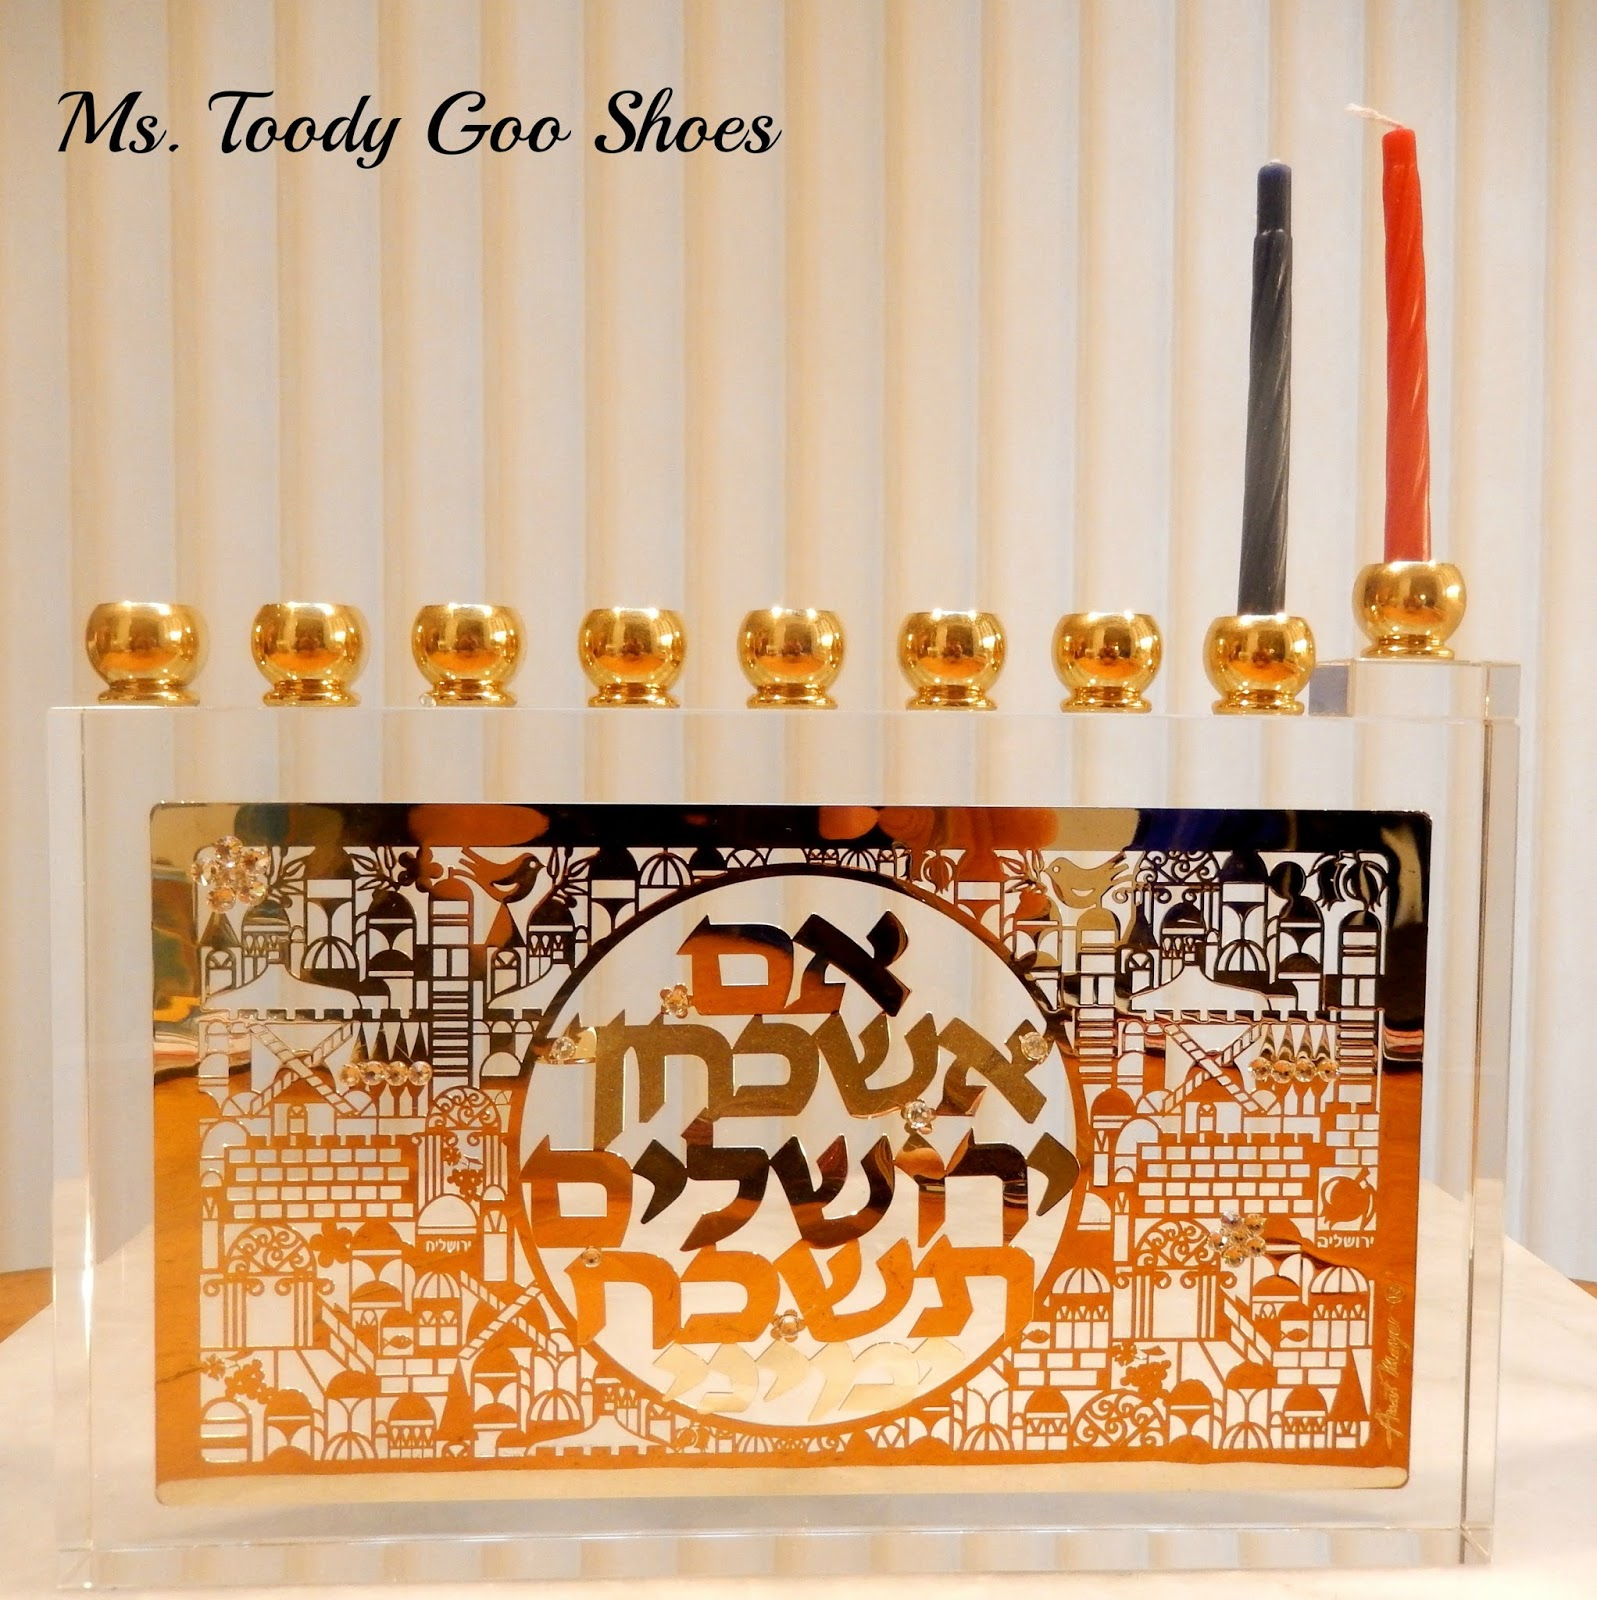 A Menorah and 2000 Year-old Pottery  --- Ms. Toody Goo Shoes